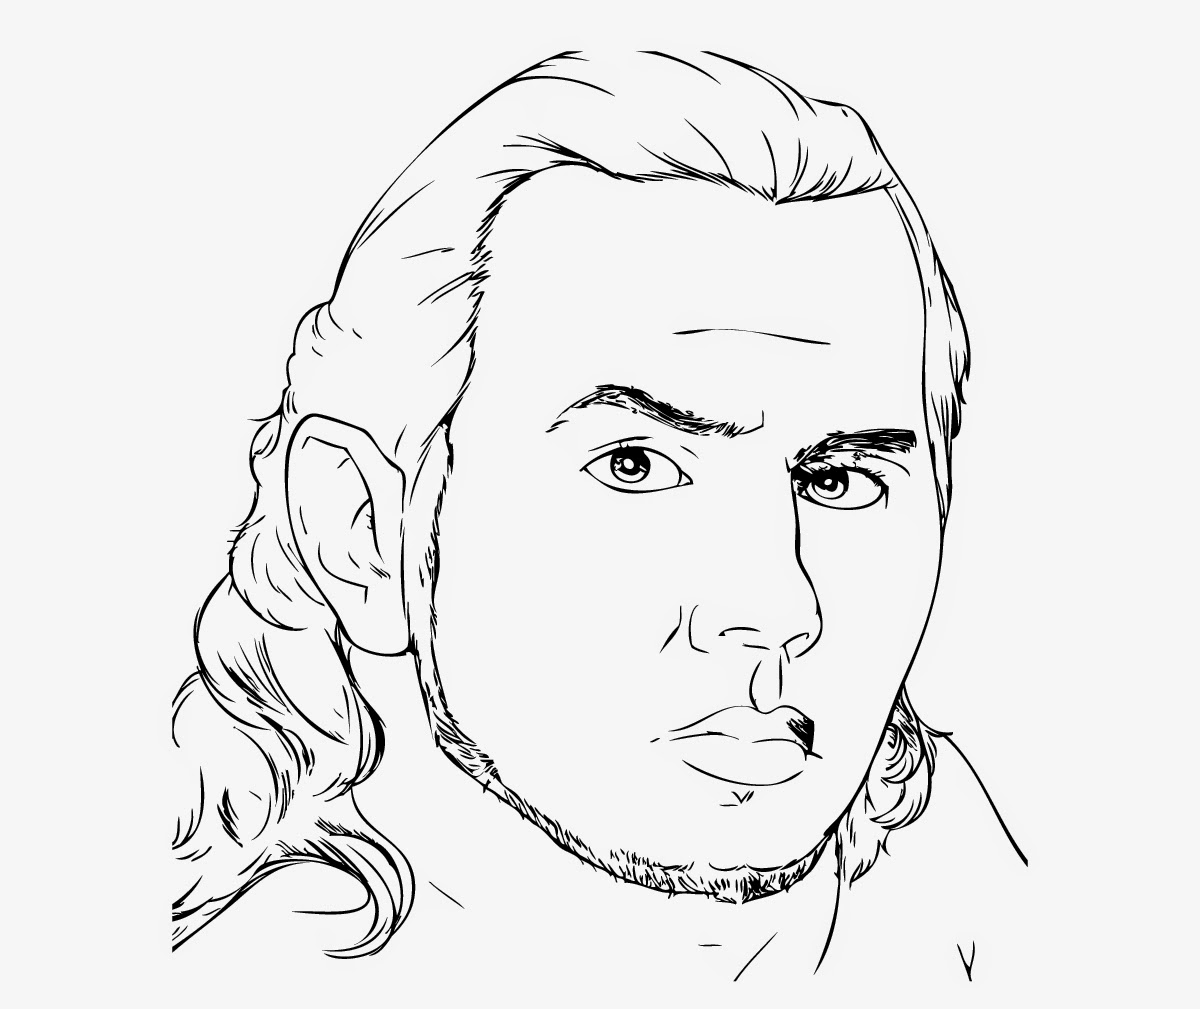 jeff hardy coloring pages free - photo#10